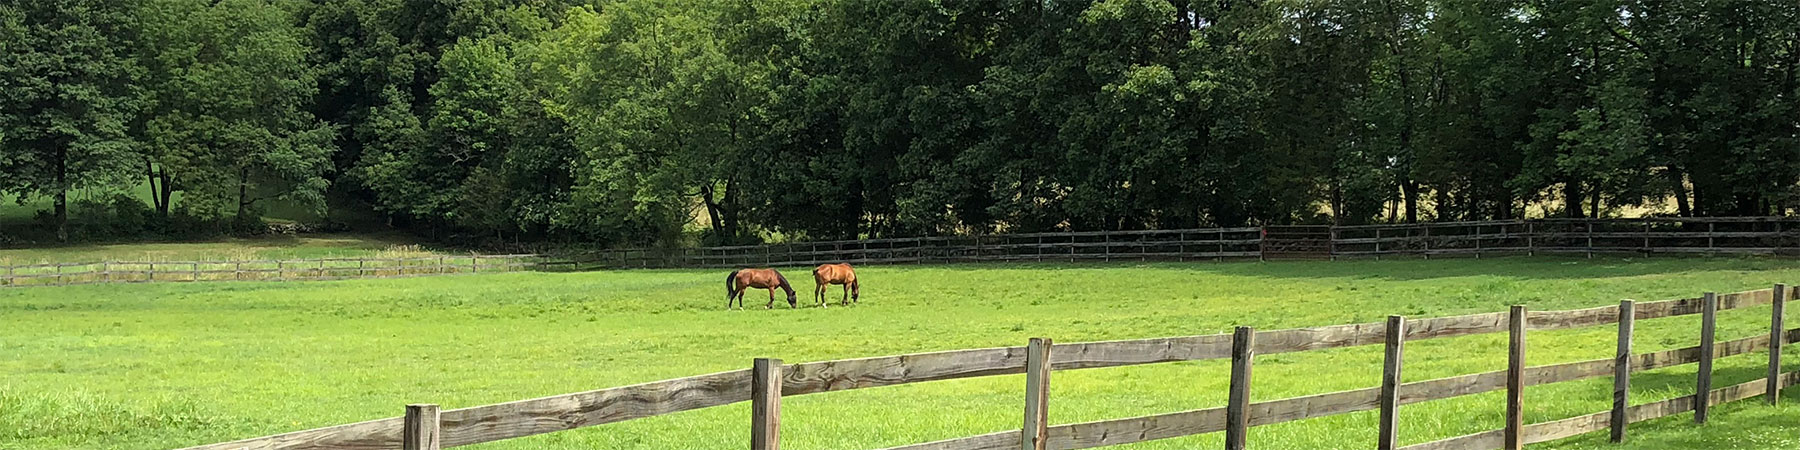 picture of horses in a fenced field in Lafayette.